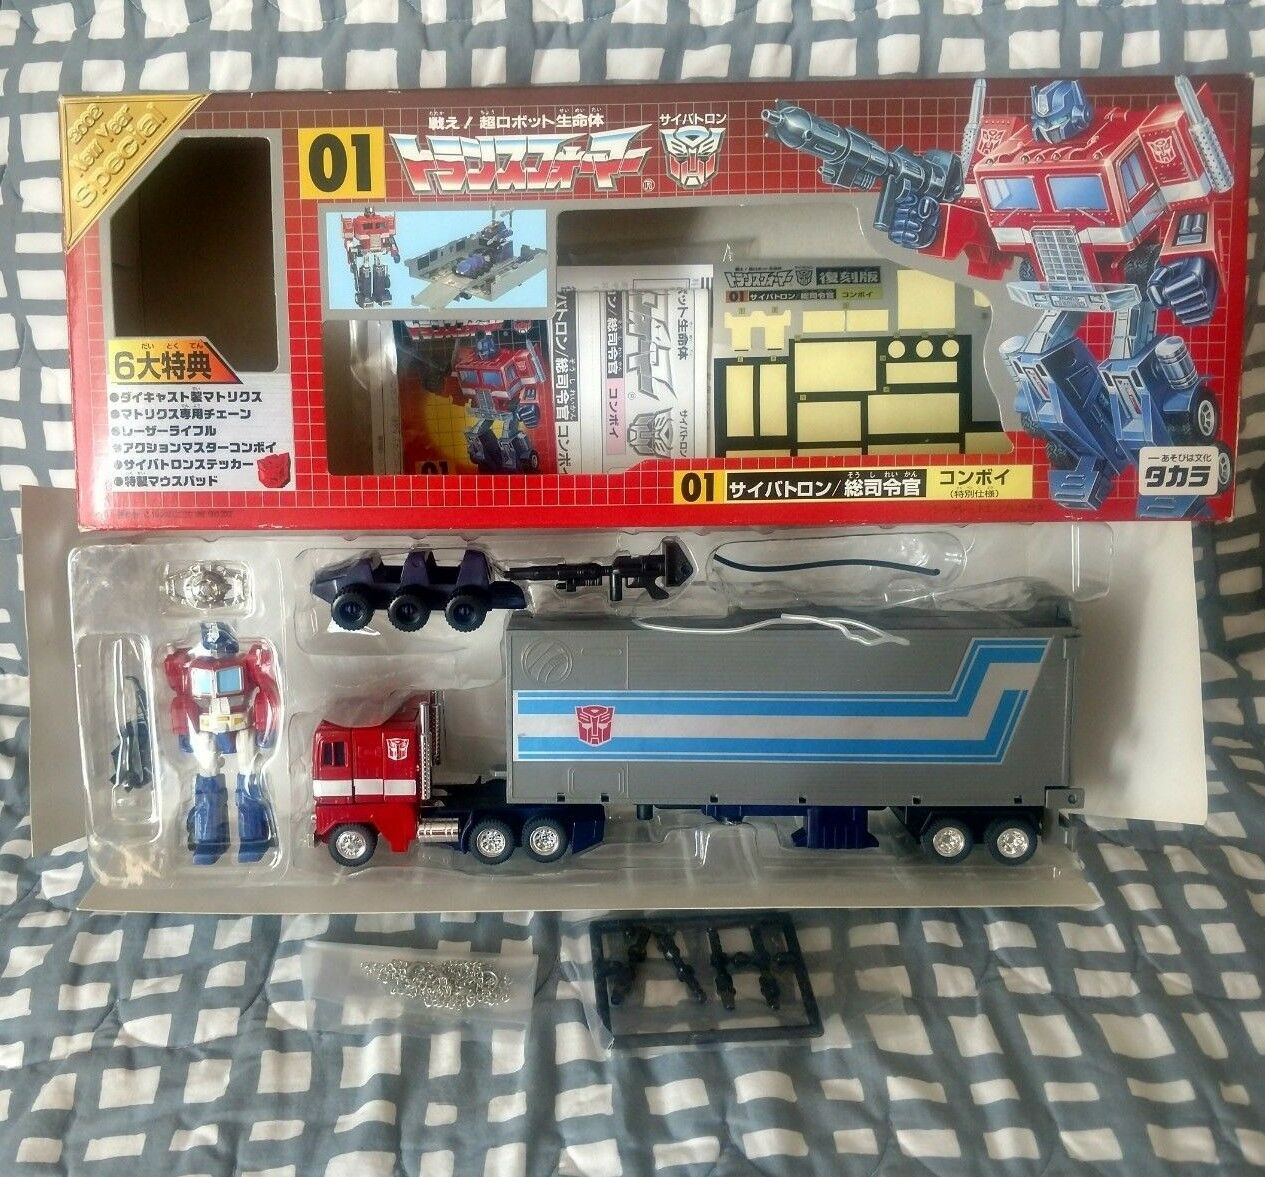 Transformers G1 Optimus Prime nuovo Year's specialee ReEmise Convoy Japan cifra 01